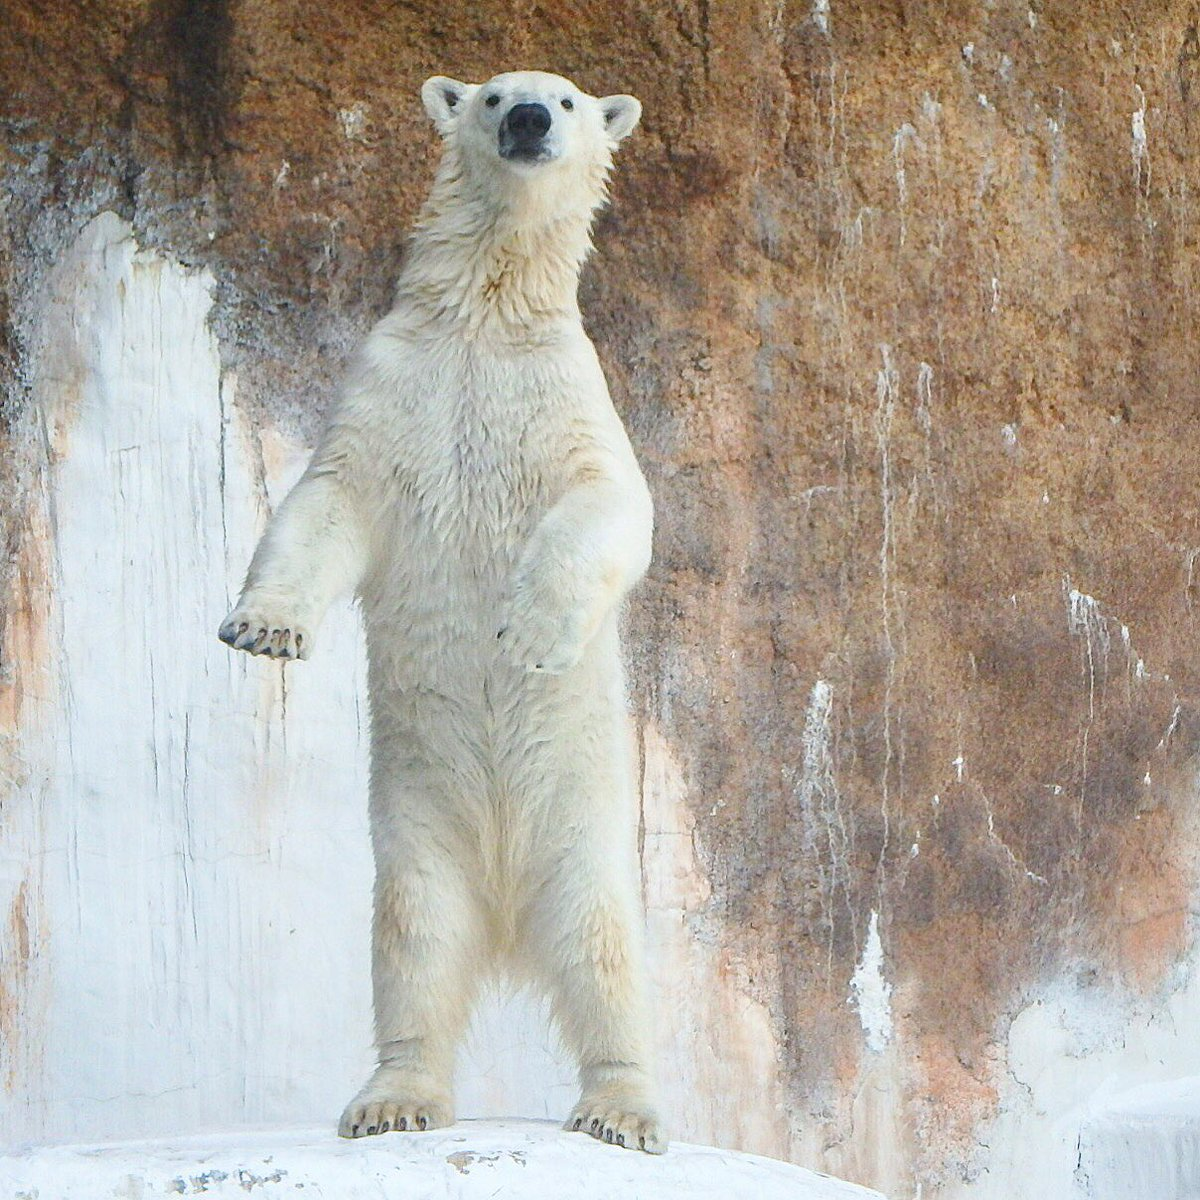 Momo the #polarbear who was the 18-month-old at #Osaka Tennoji #zoo in May 2016 #animal #animals #animalLover #animallovers #travel #travelling #trip #travelblog #japan<br>http://pic.twitter.com/MH8IvkuIBa